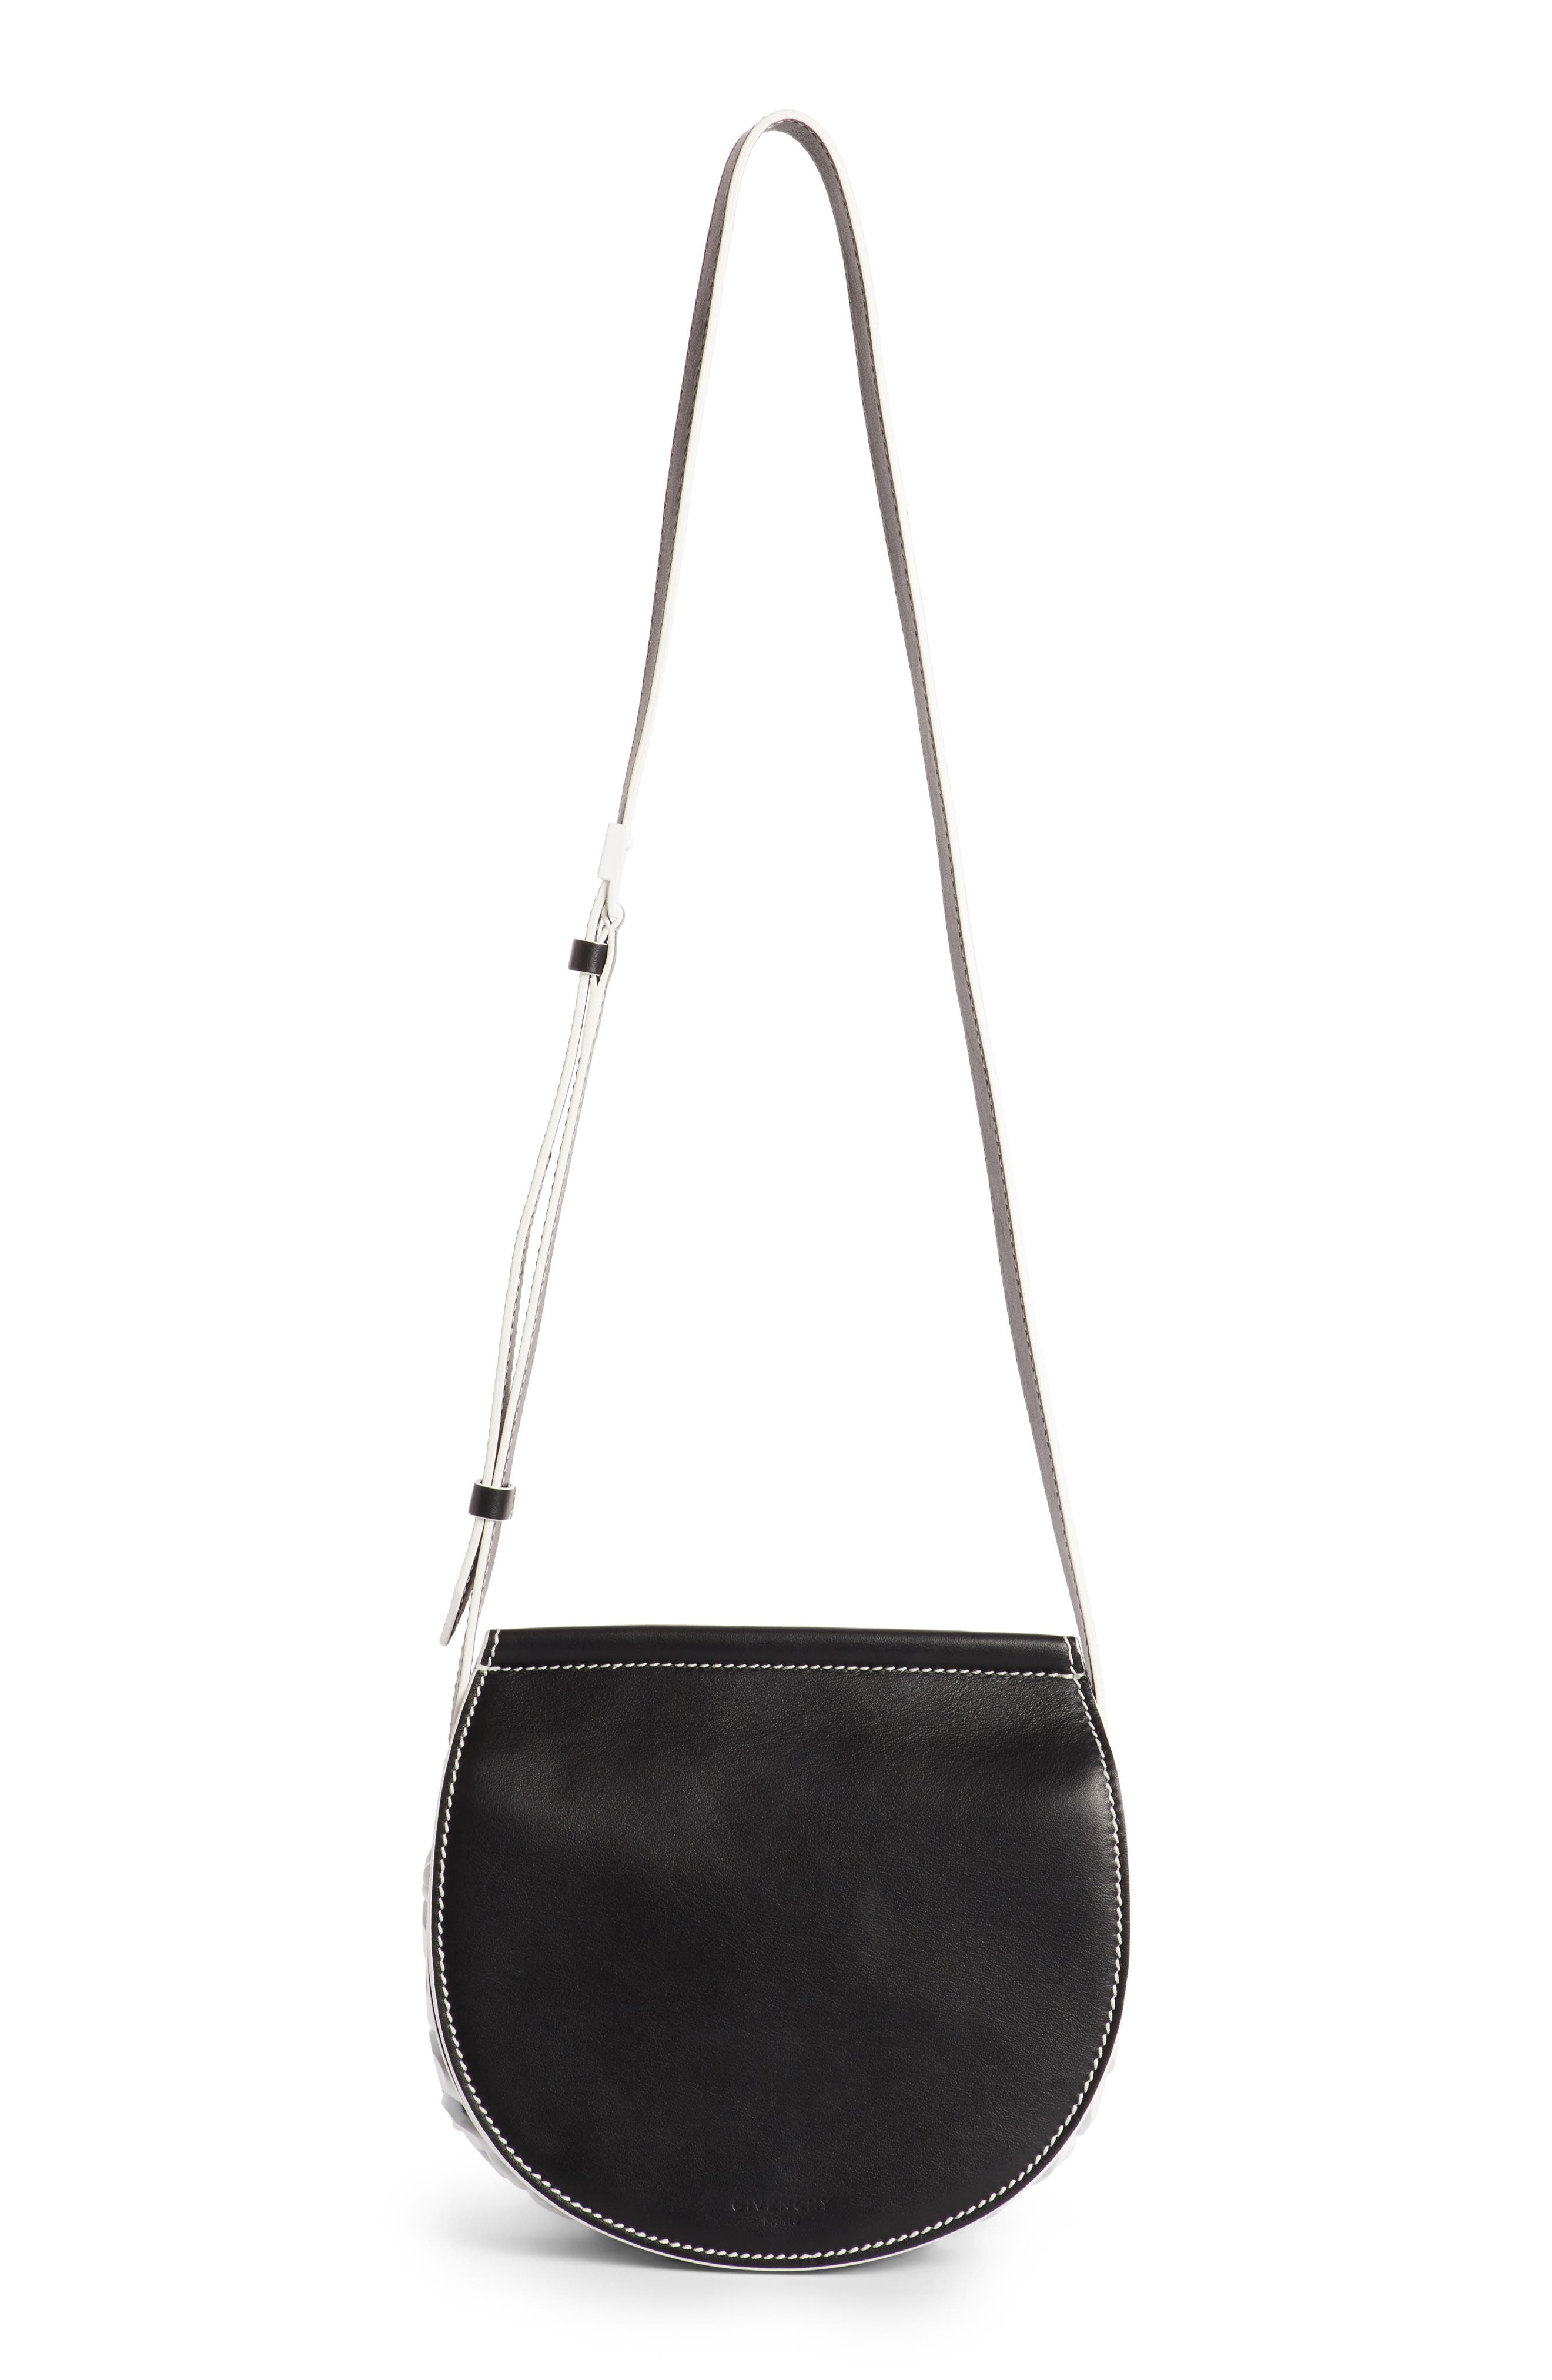 Givenchy Mini Infinity Calfskin Saddle Bag